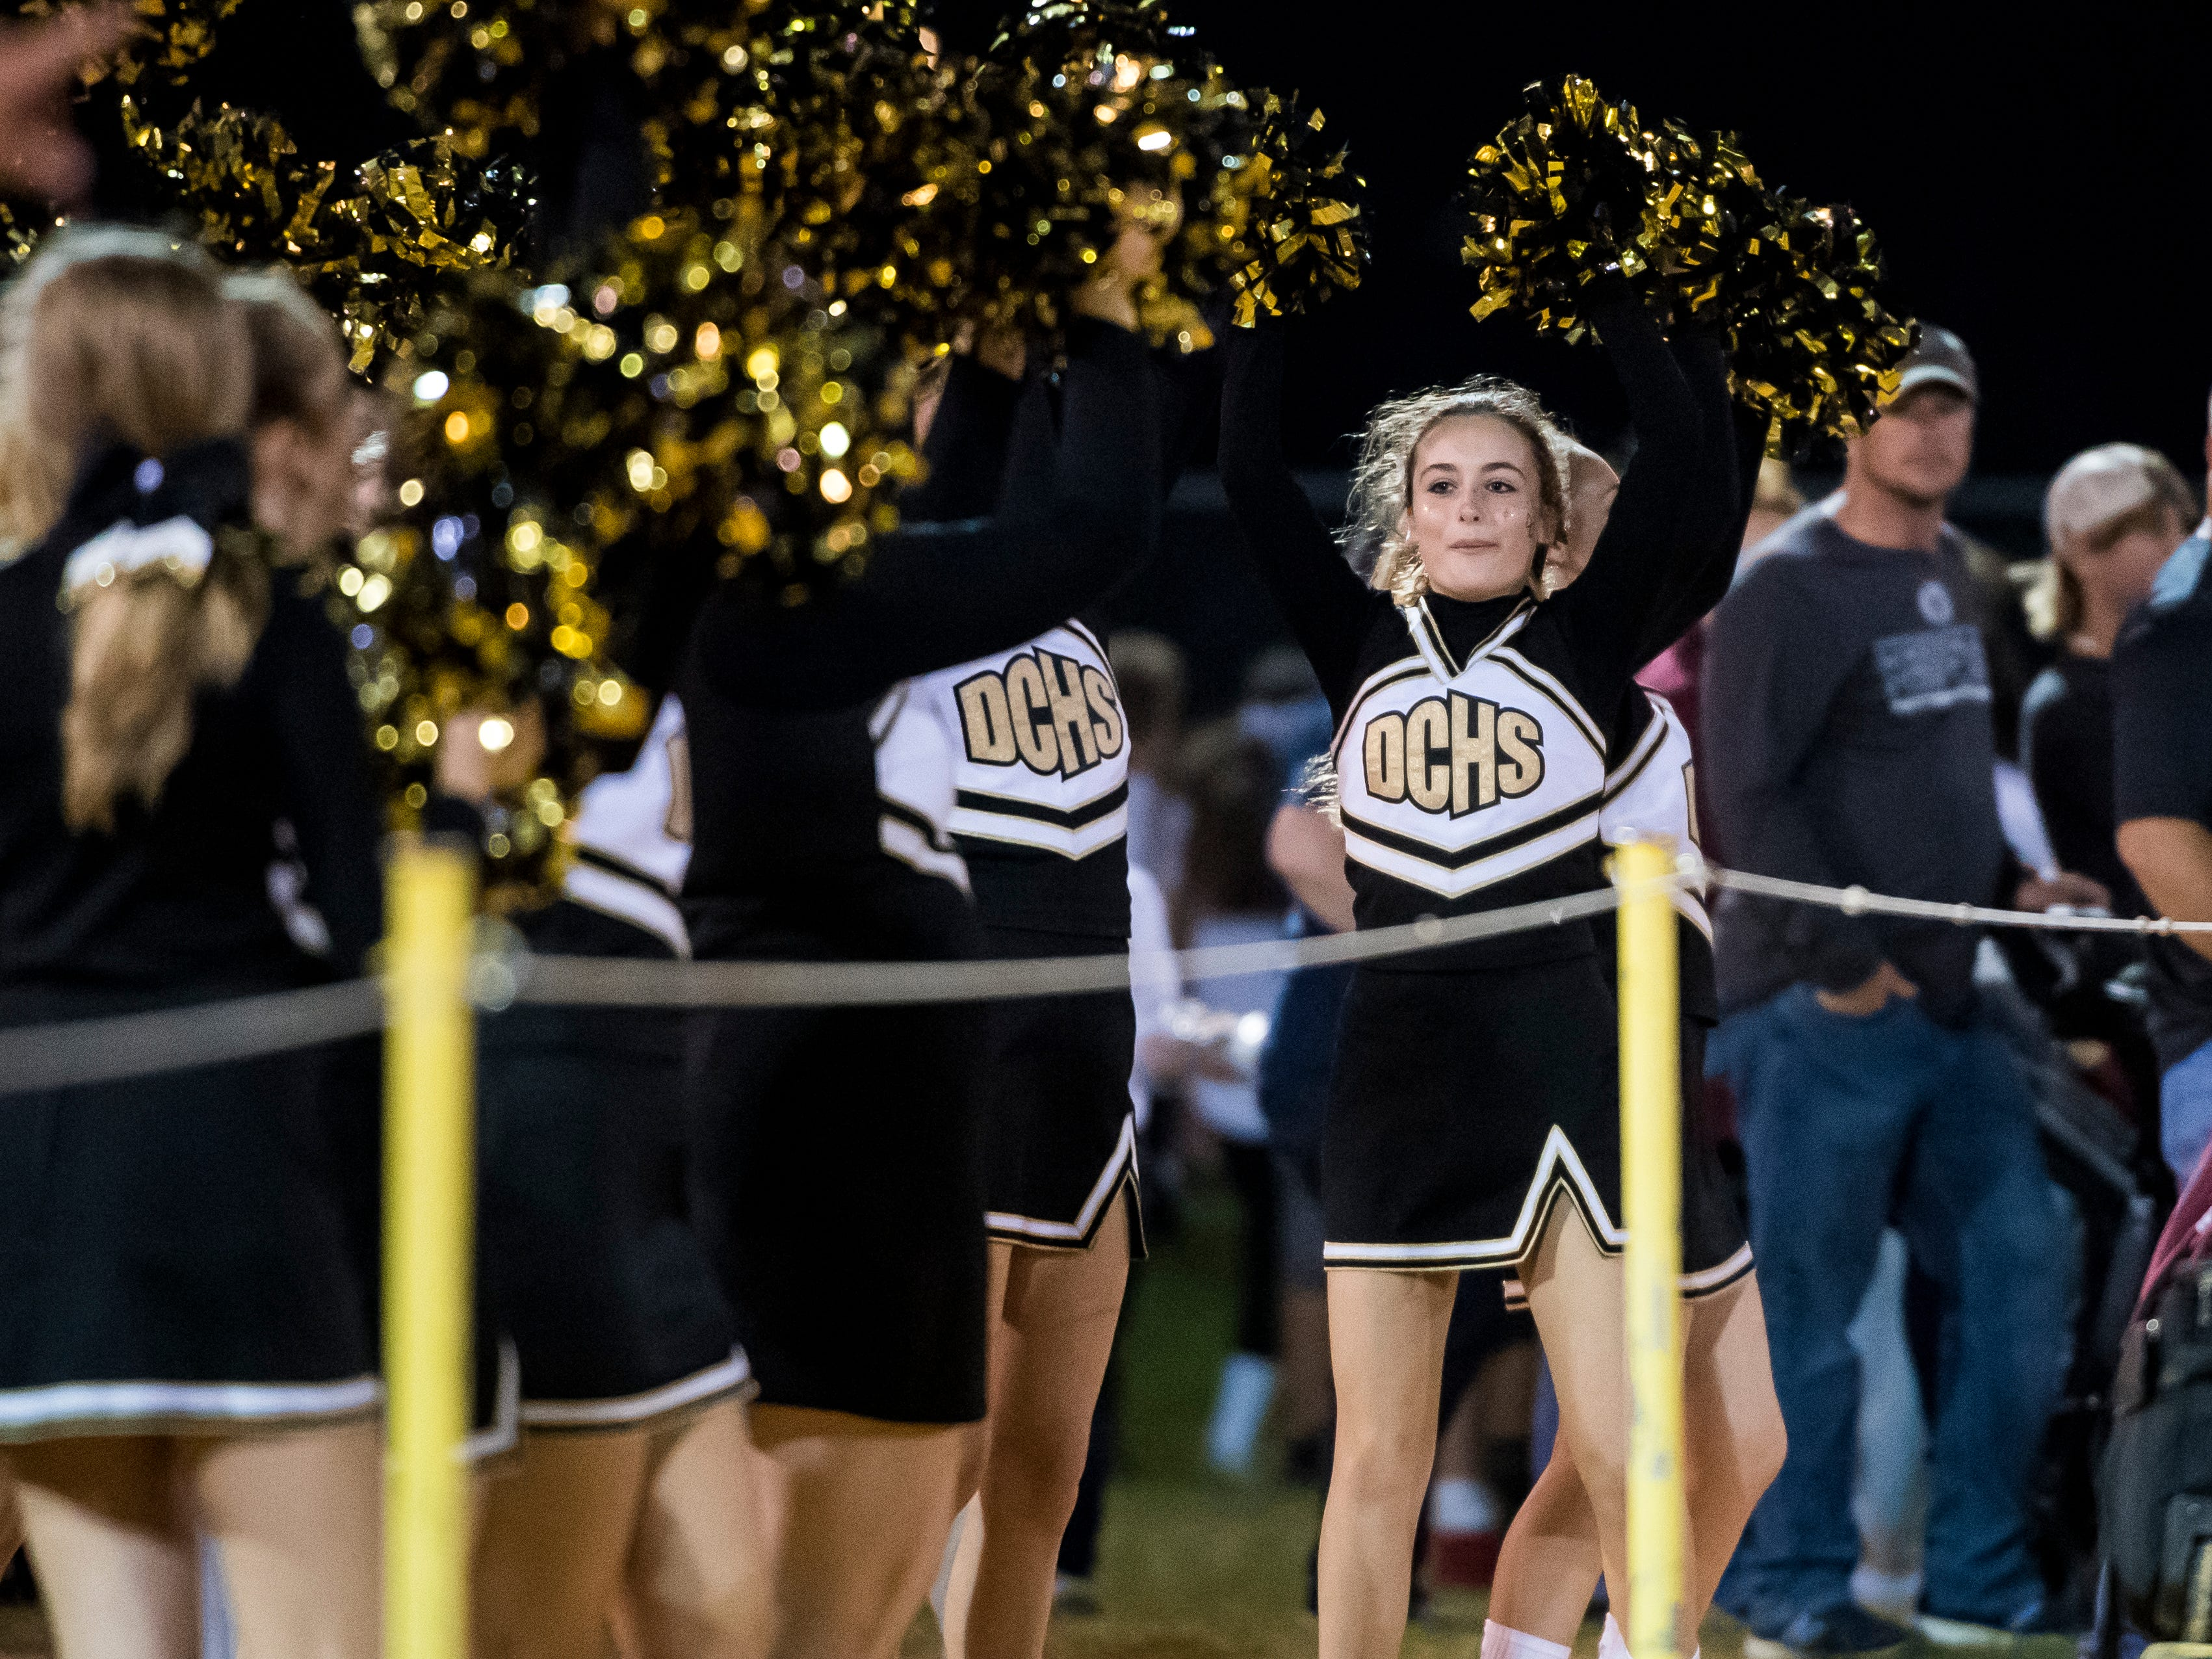 Delone Catholic cheerleaders during Friday's game against Littlestown on Friday, September 21, 2018. The Squires topped the Bolts 27-7.